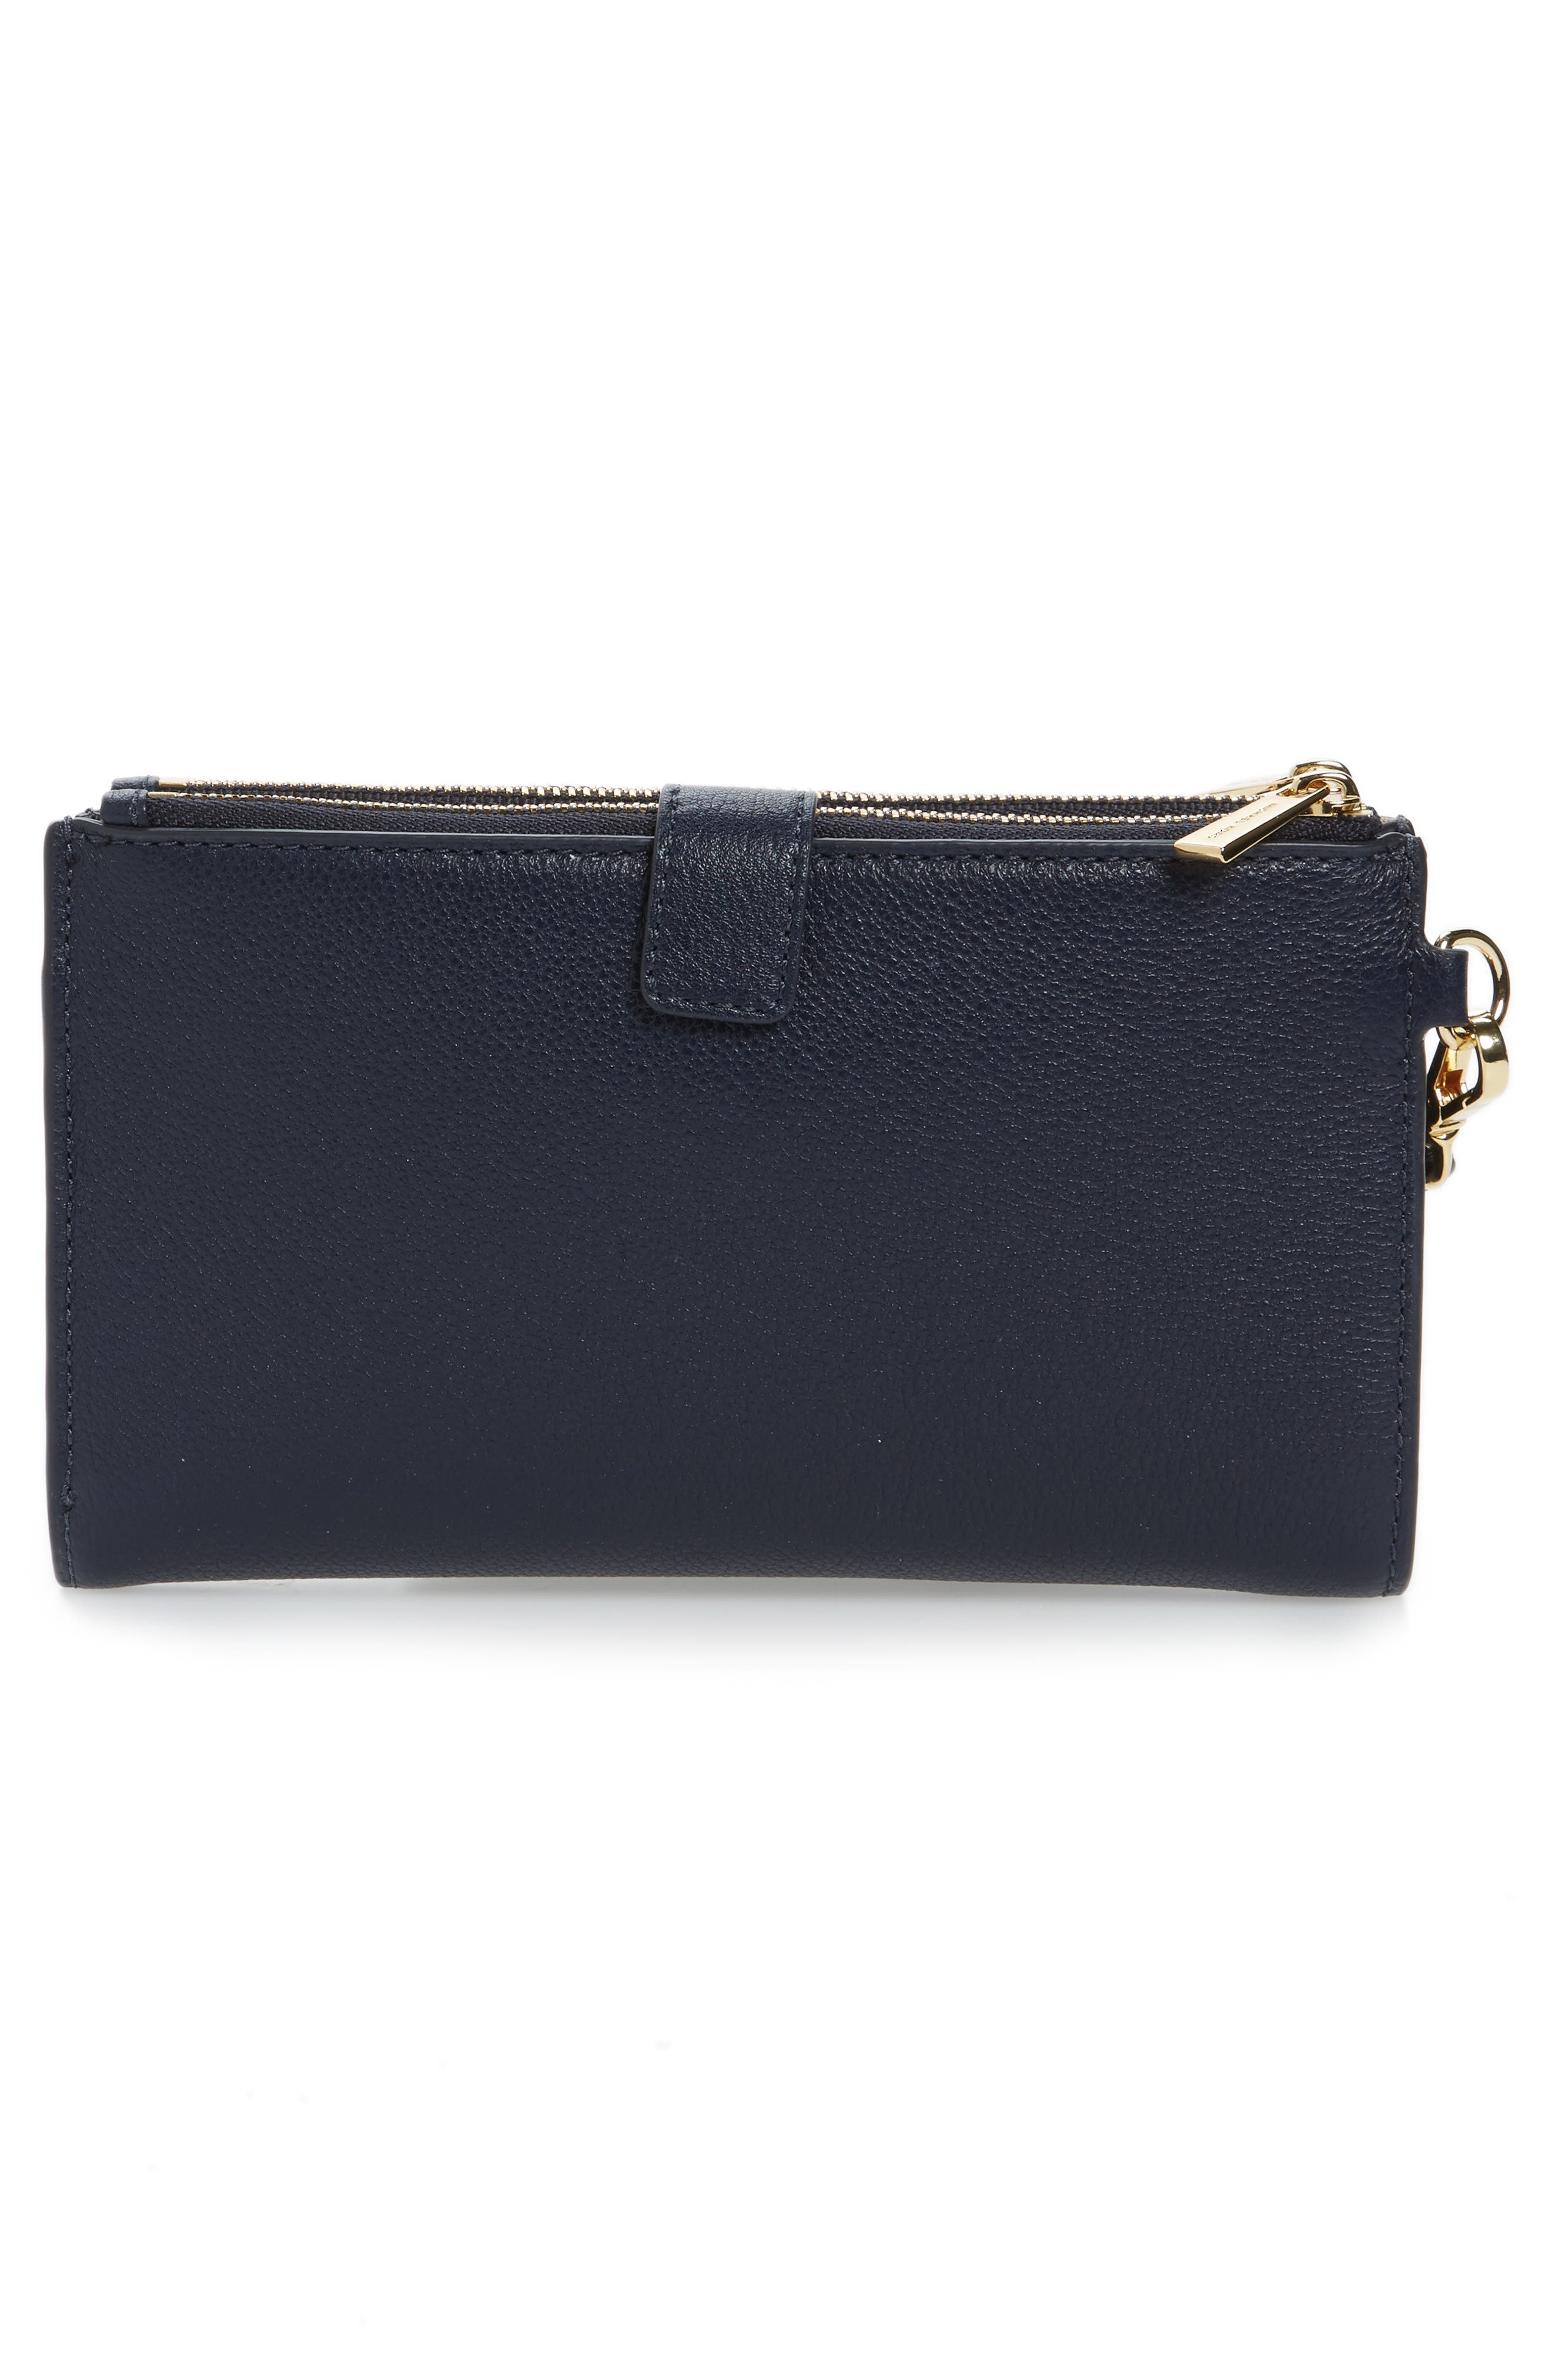 Adele Leather Wristlet,                             Alternate thumbnail 29, color,